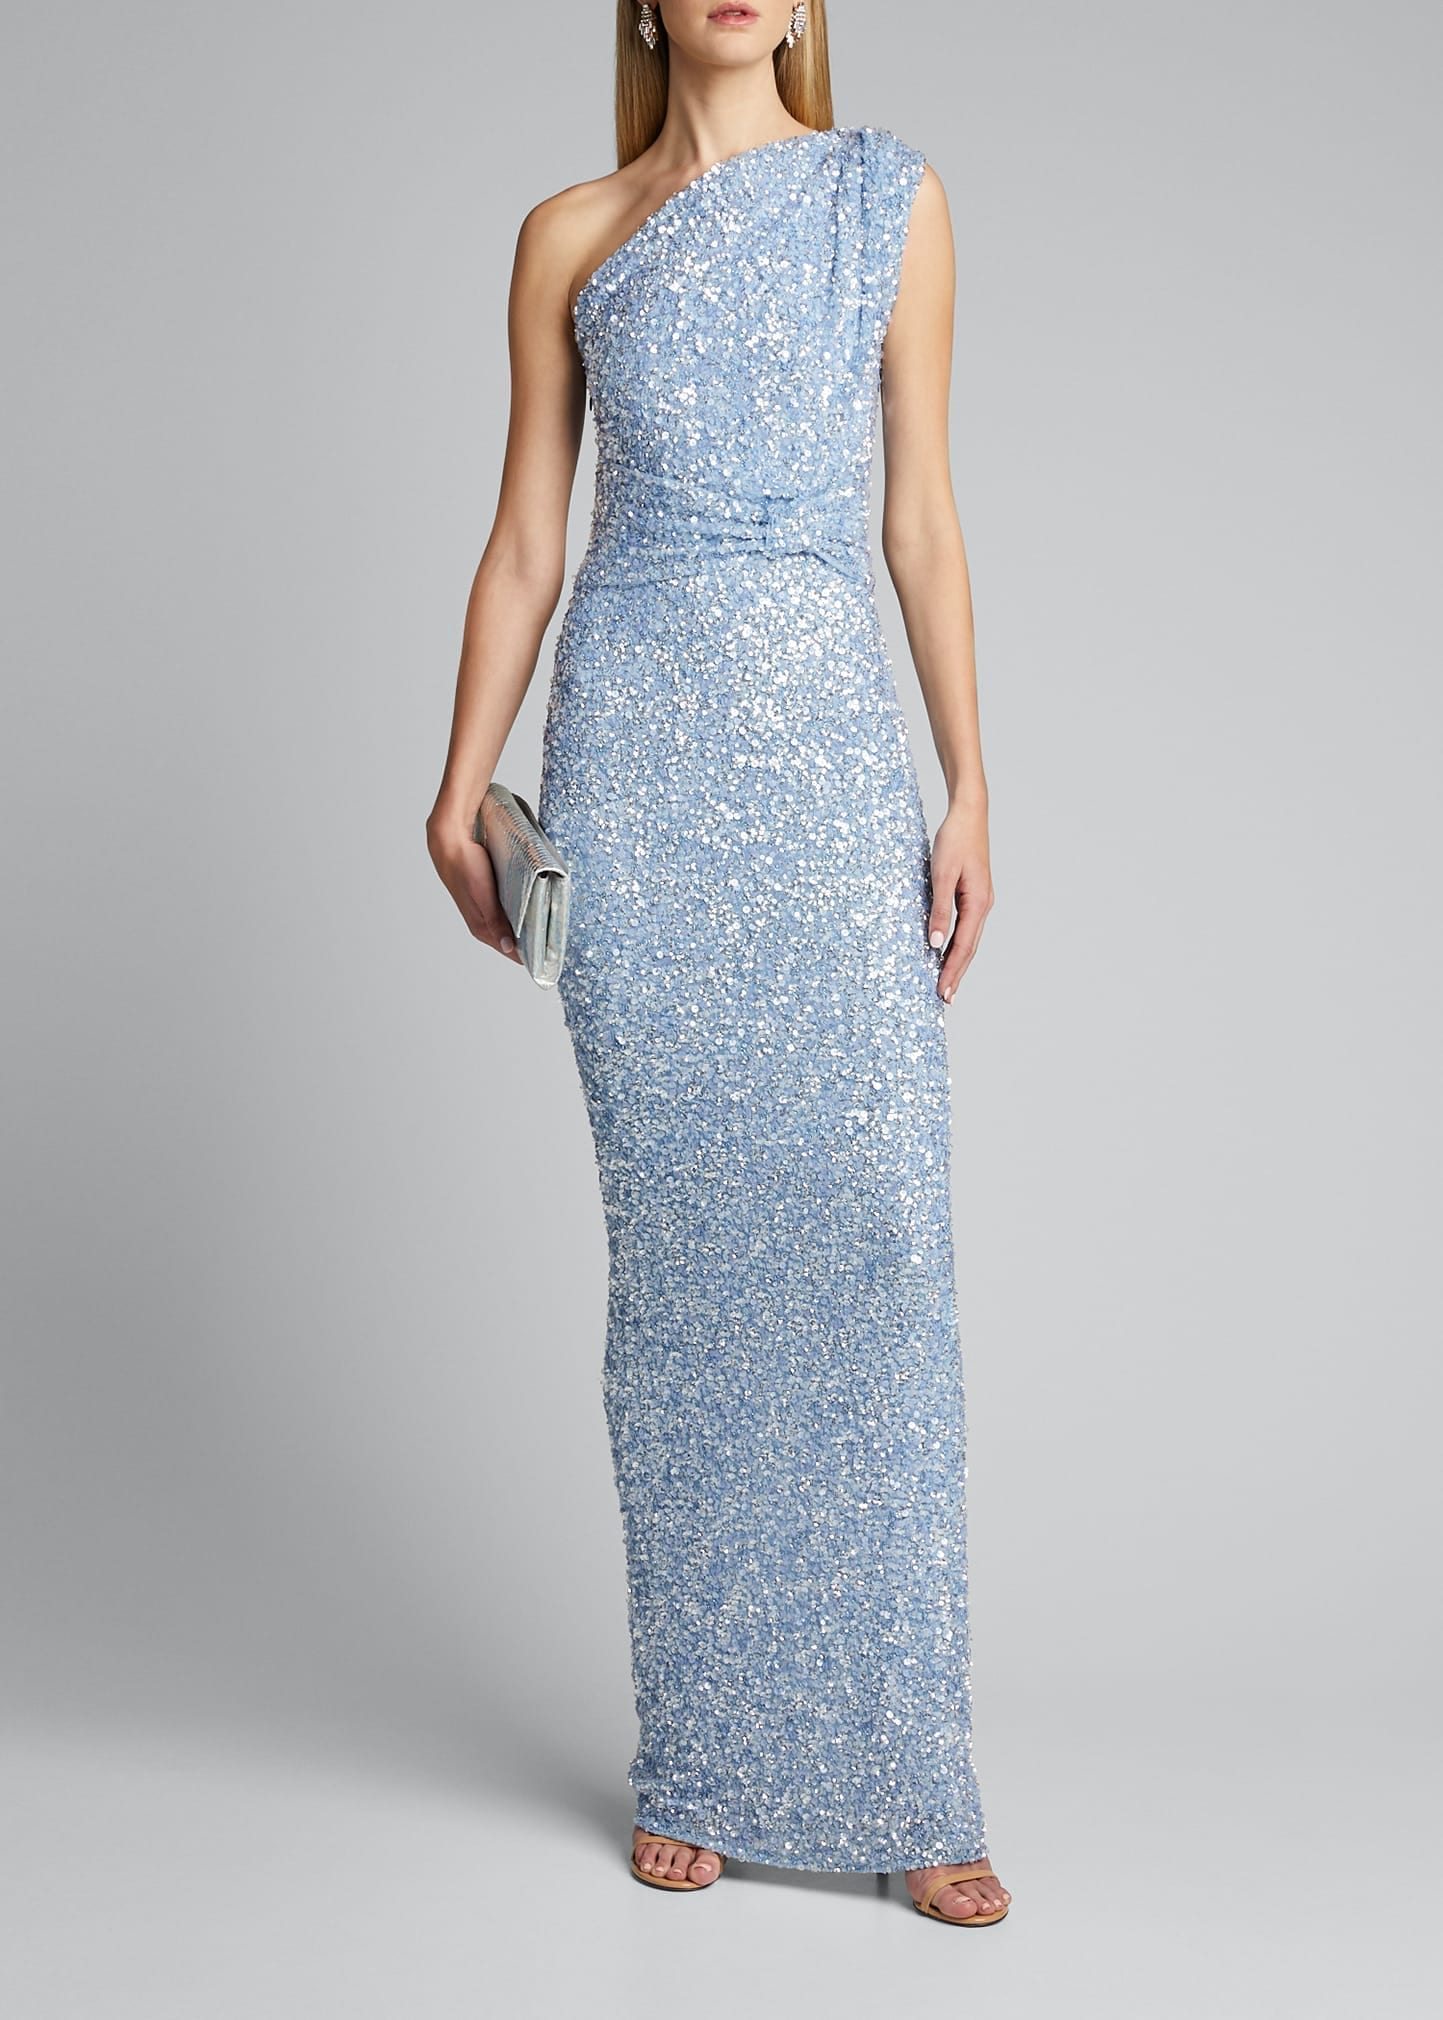 RACHEL GILBERT Embellished One-Shoulder Gown